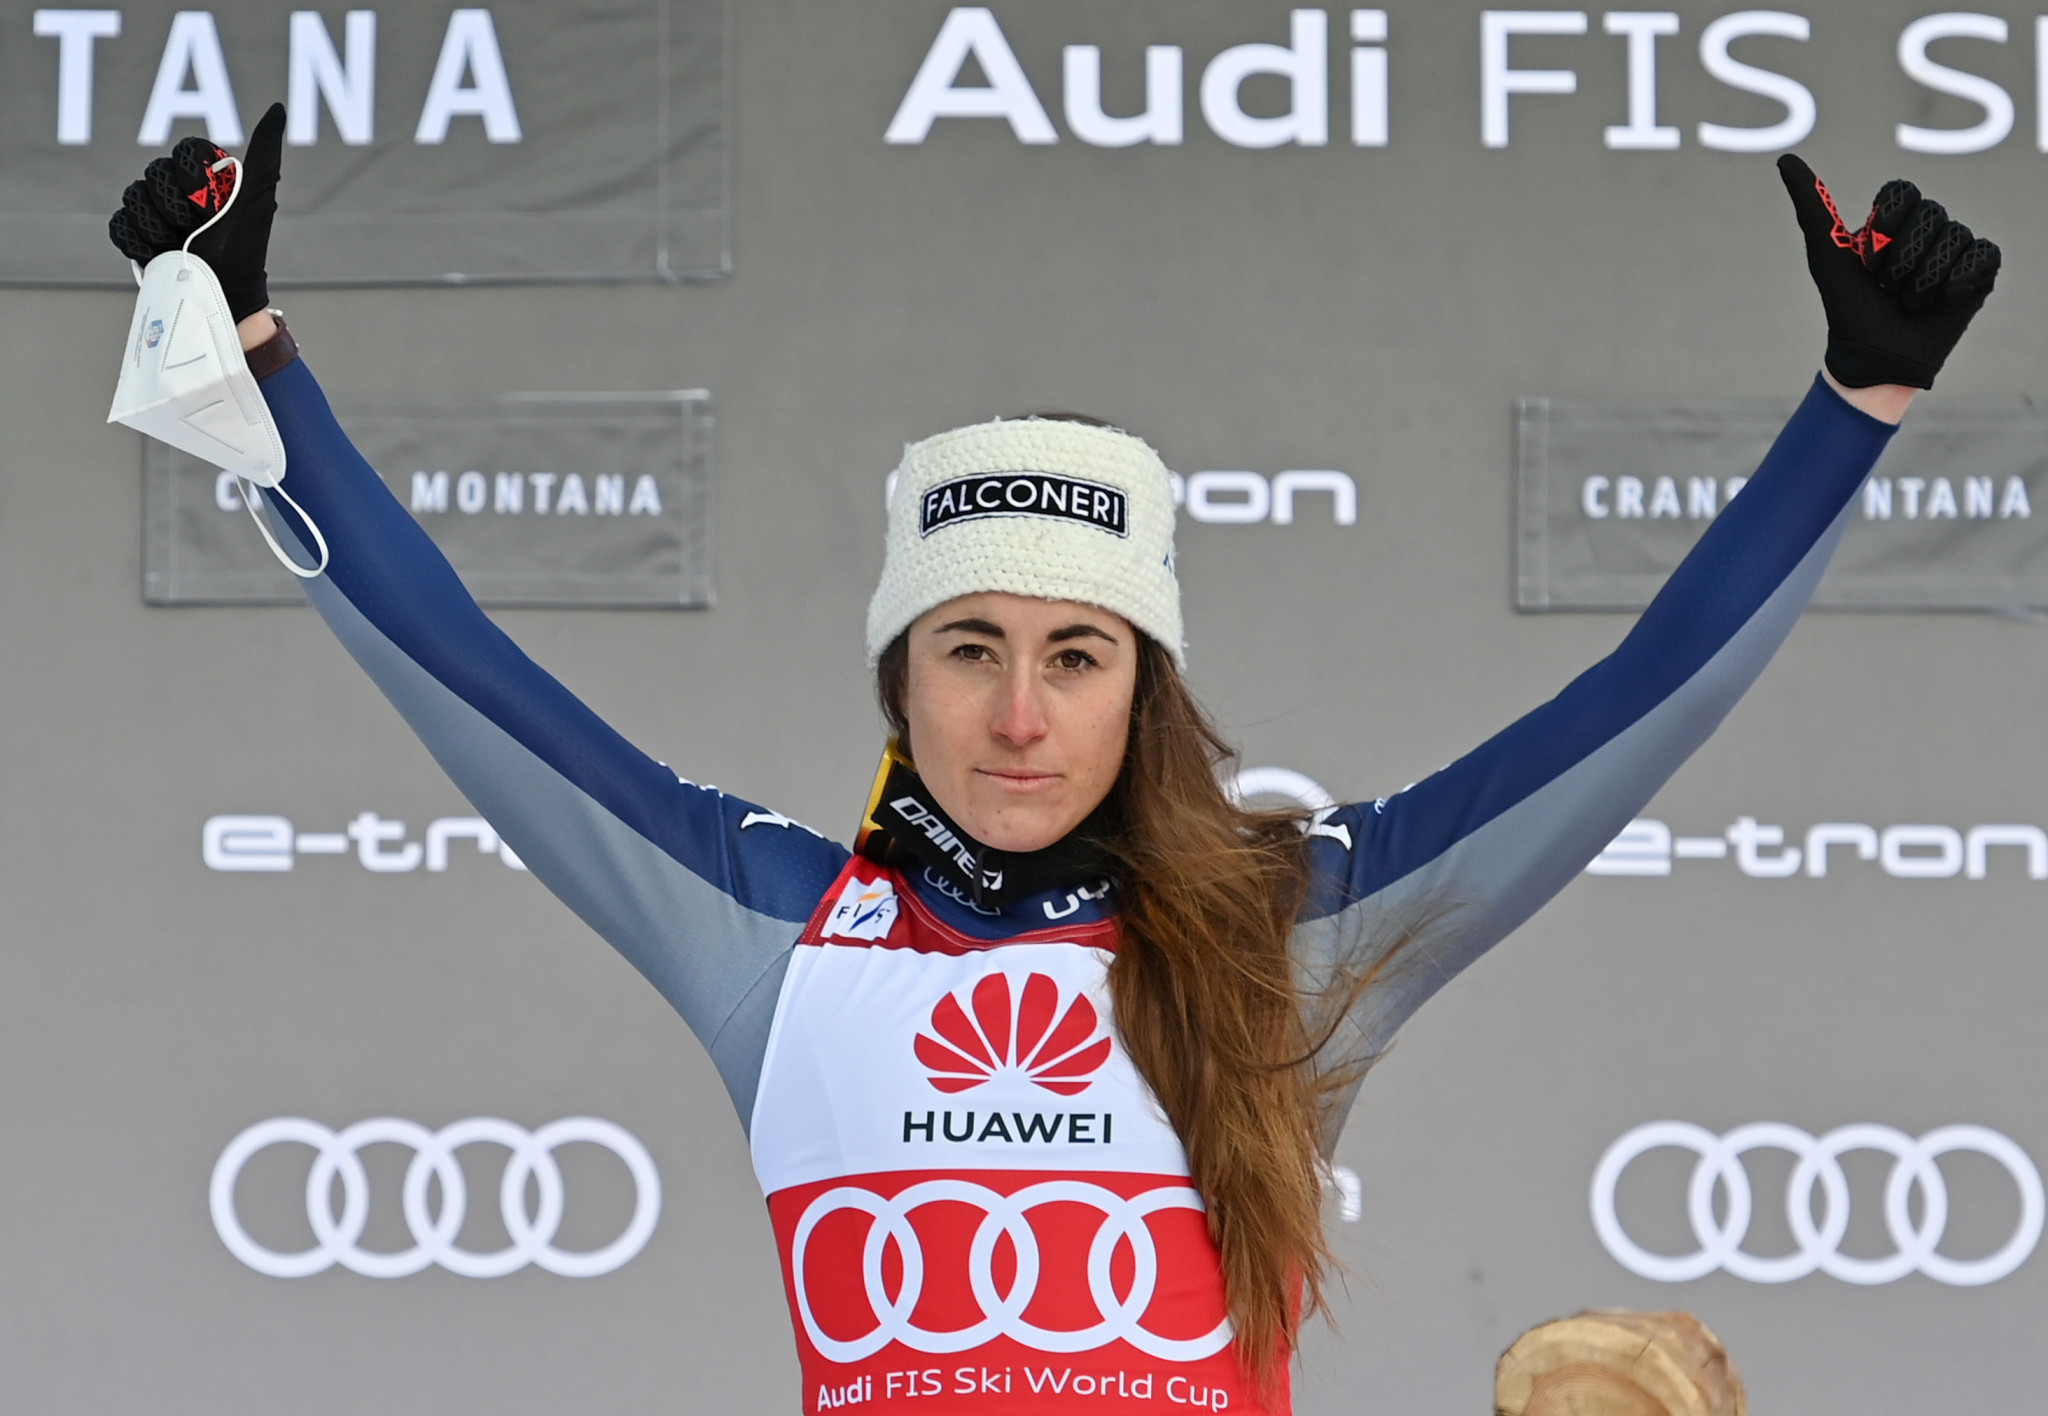 Olympic champion Goggia wins Crans-Montana downhill for 10th World Cup victory